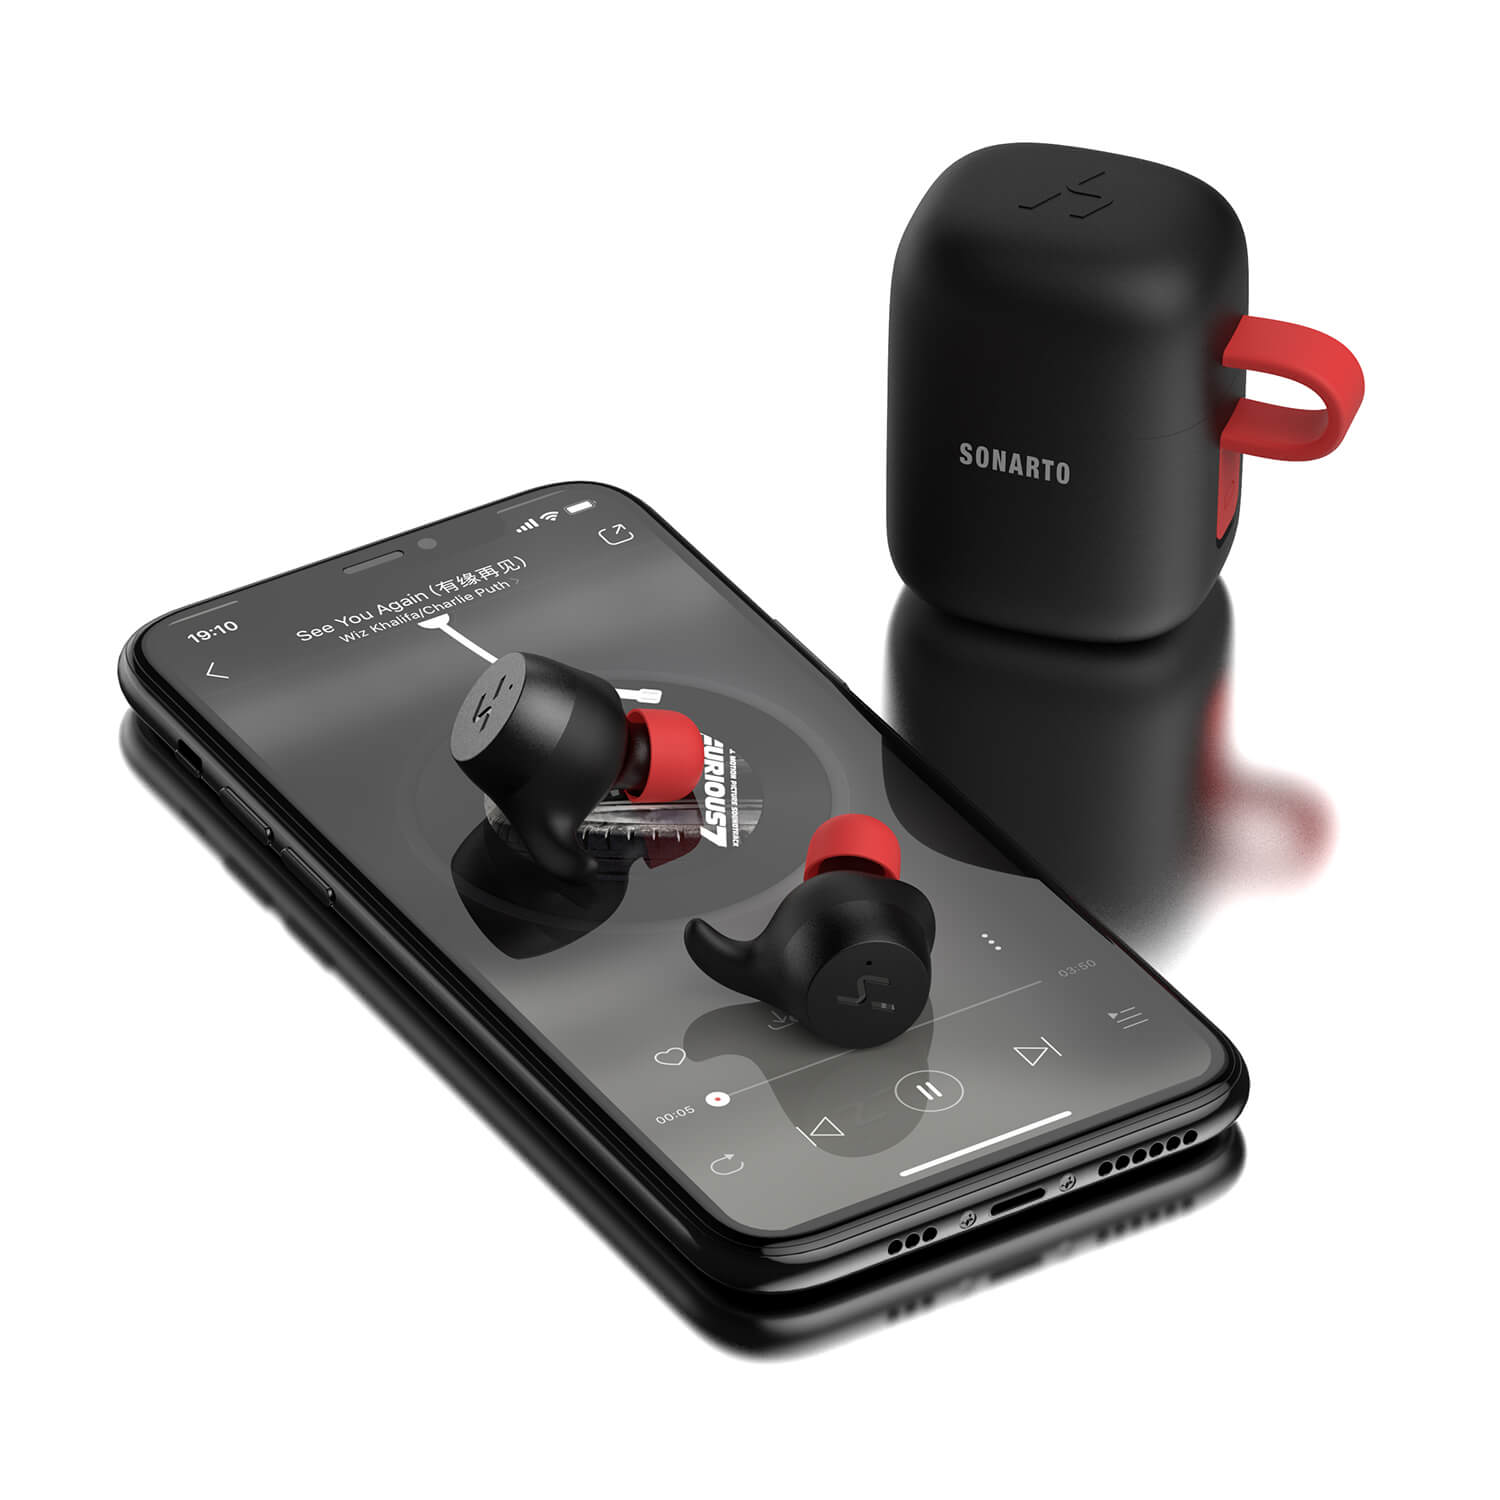 Sonarto True Wireless Earbuds - Black